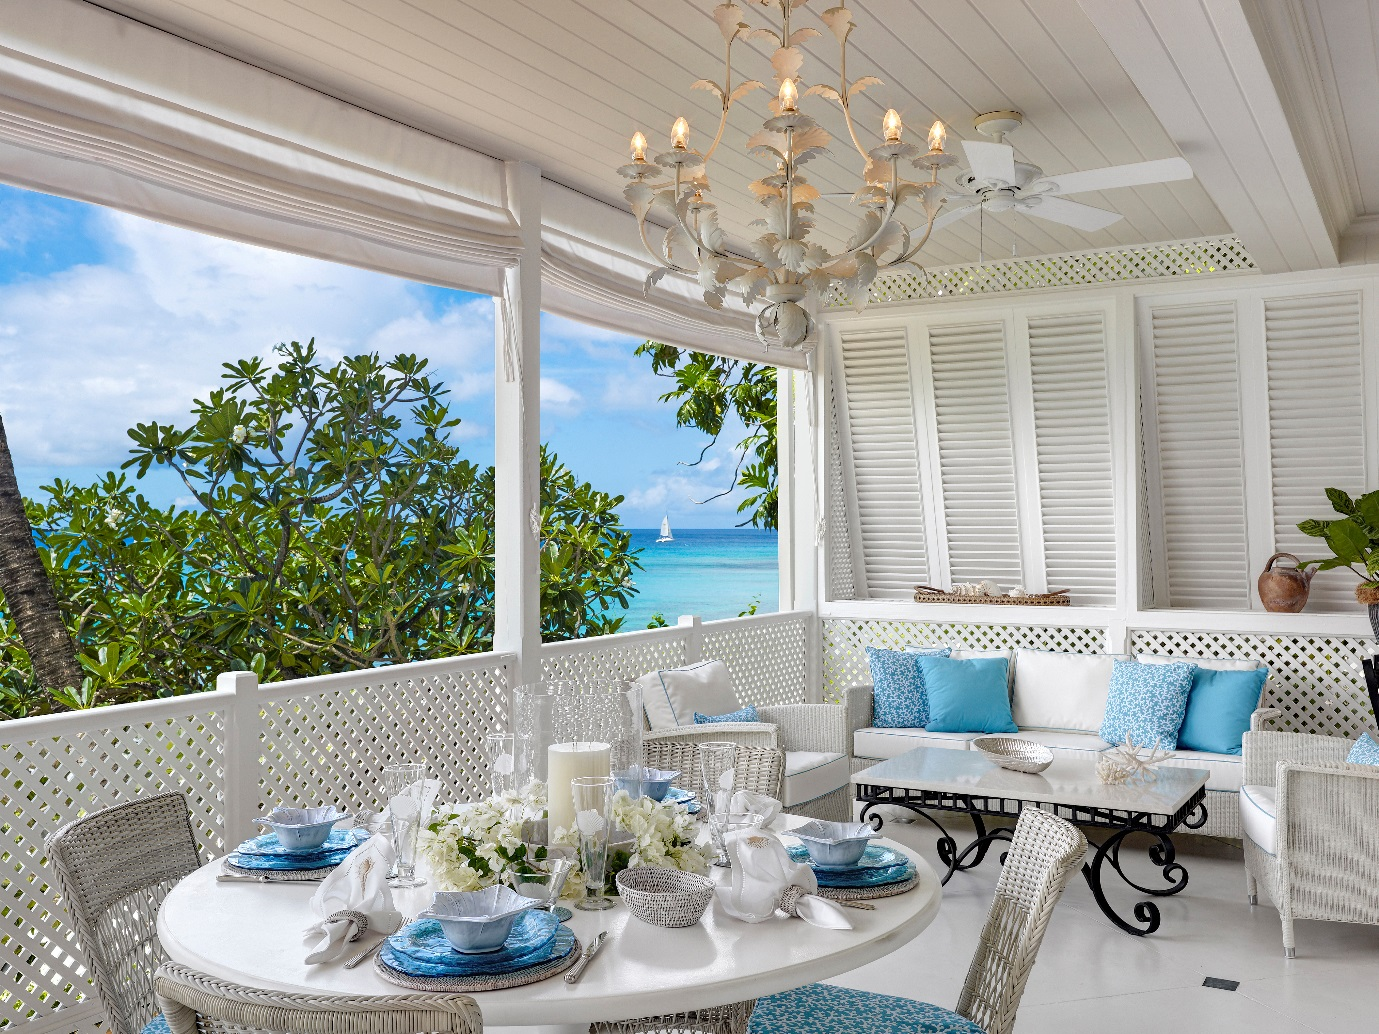 Jenny Blanc Design Director - Award-winning design in Barbados